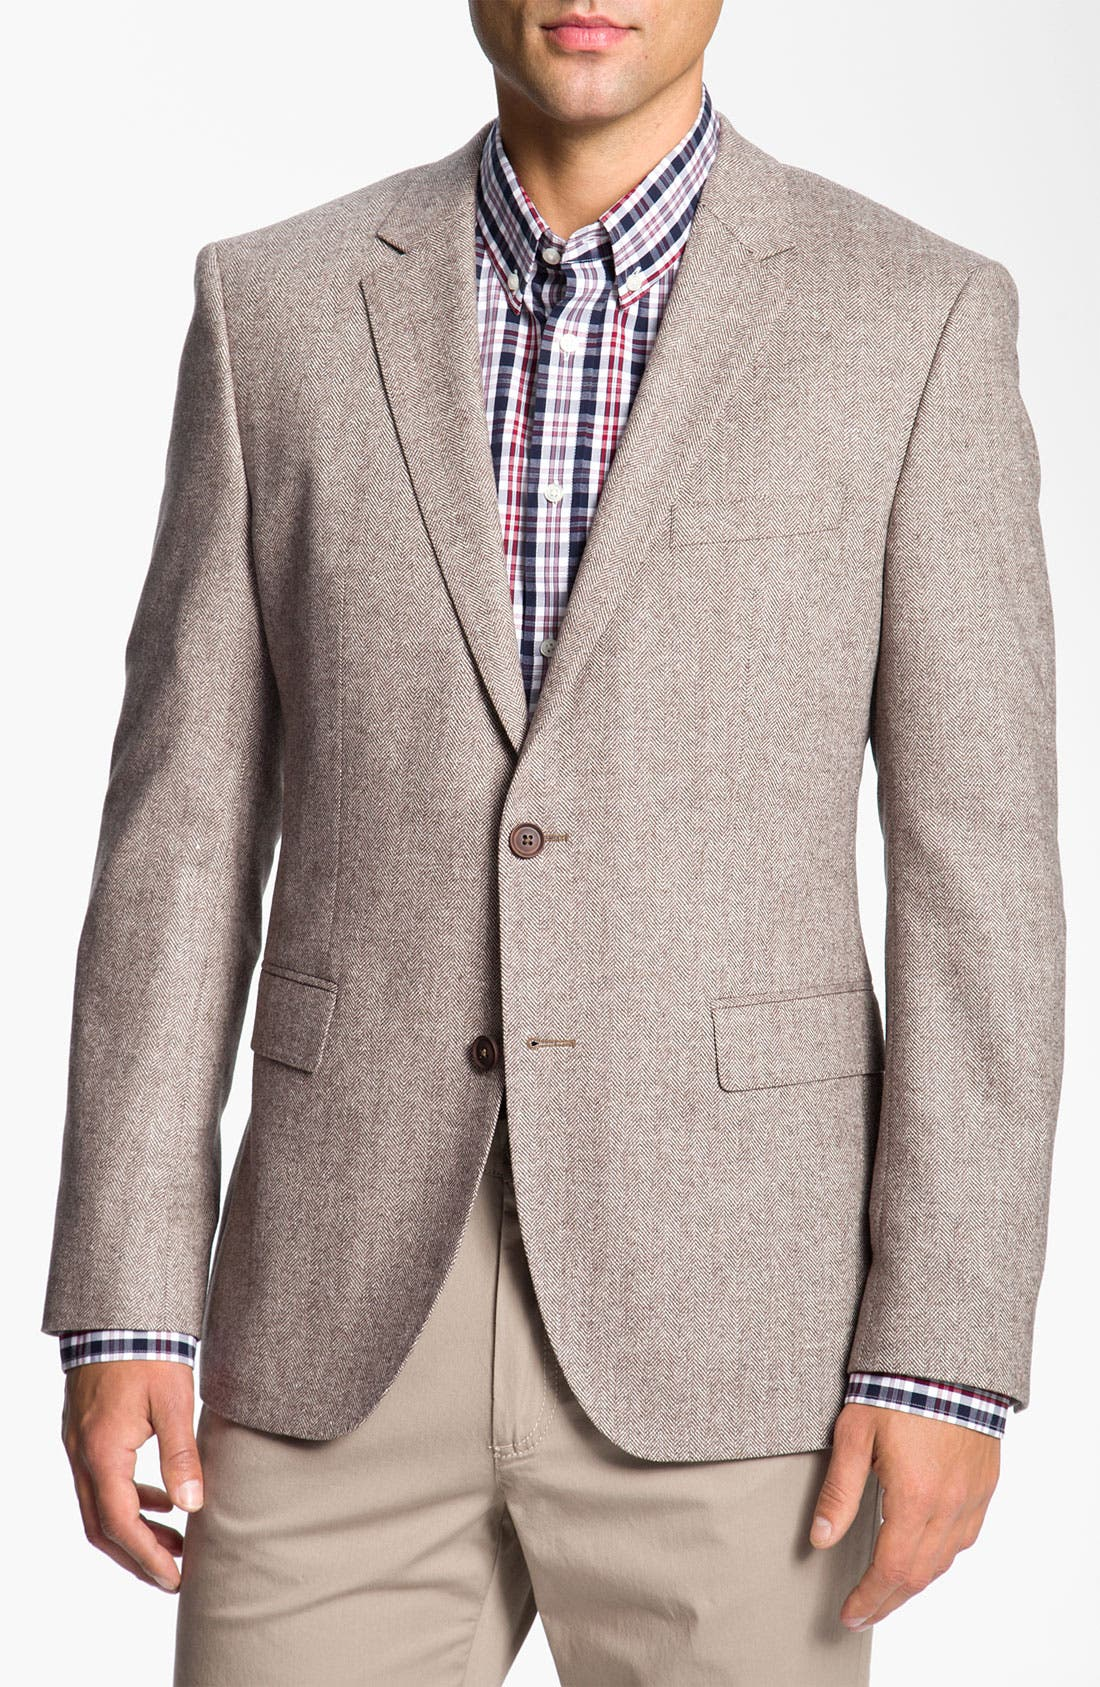 Alternate Image 1 Selected - BOSS Black 'Smith' Trim Fit Herringbone Sportcoat